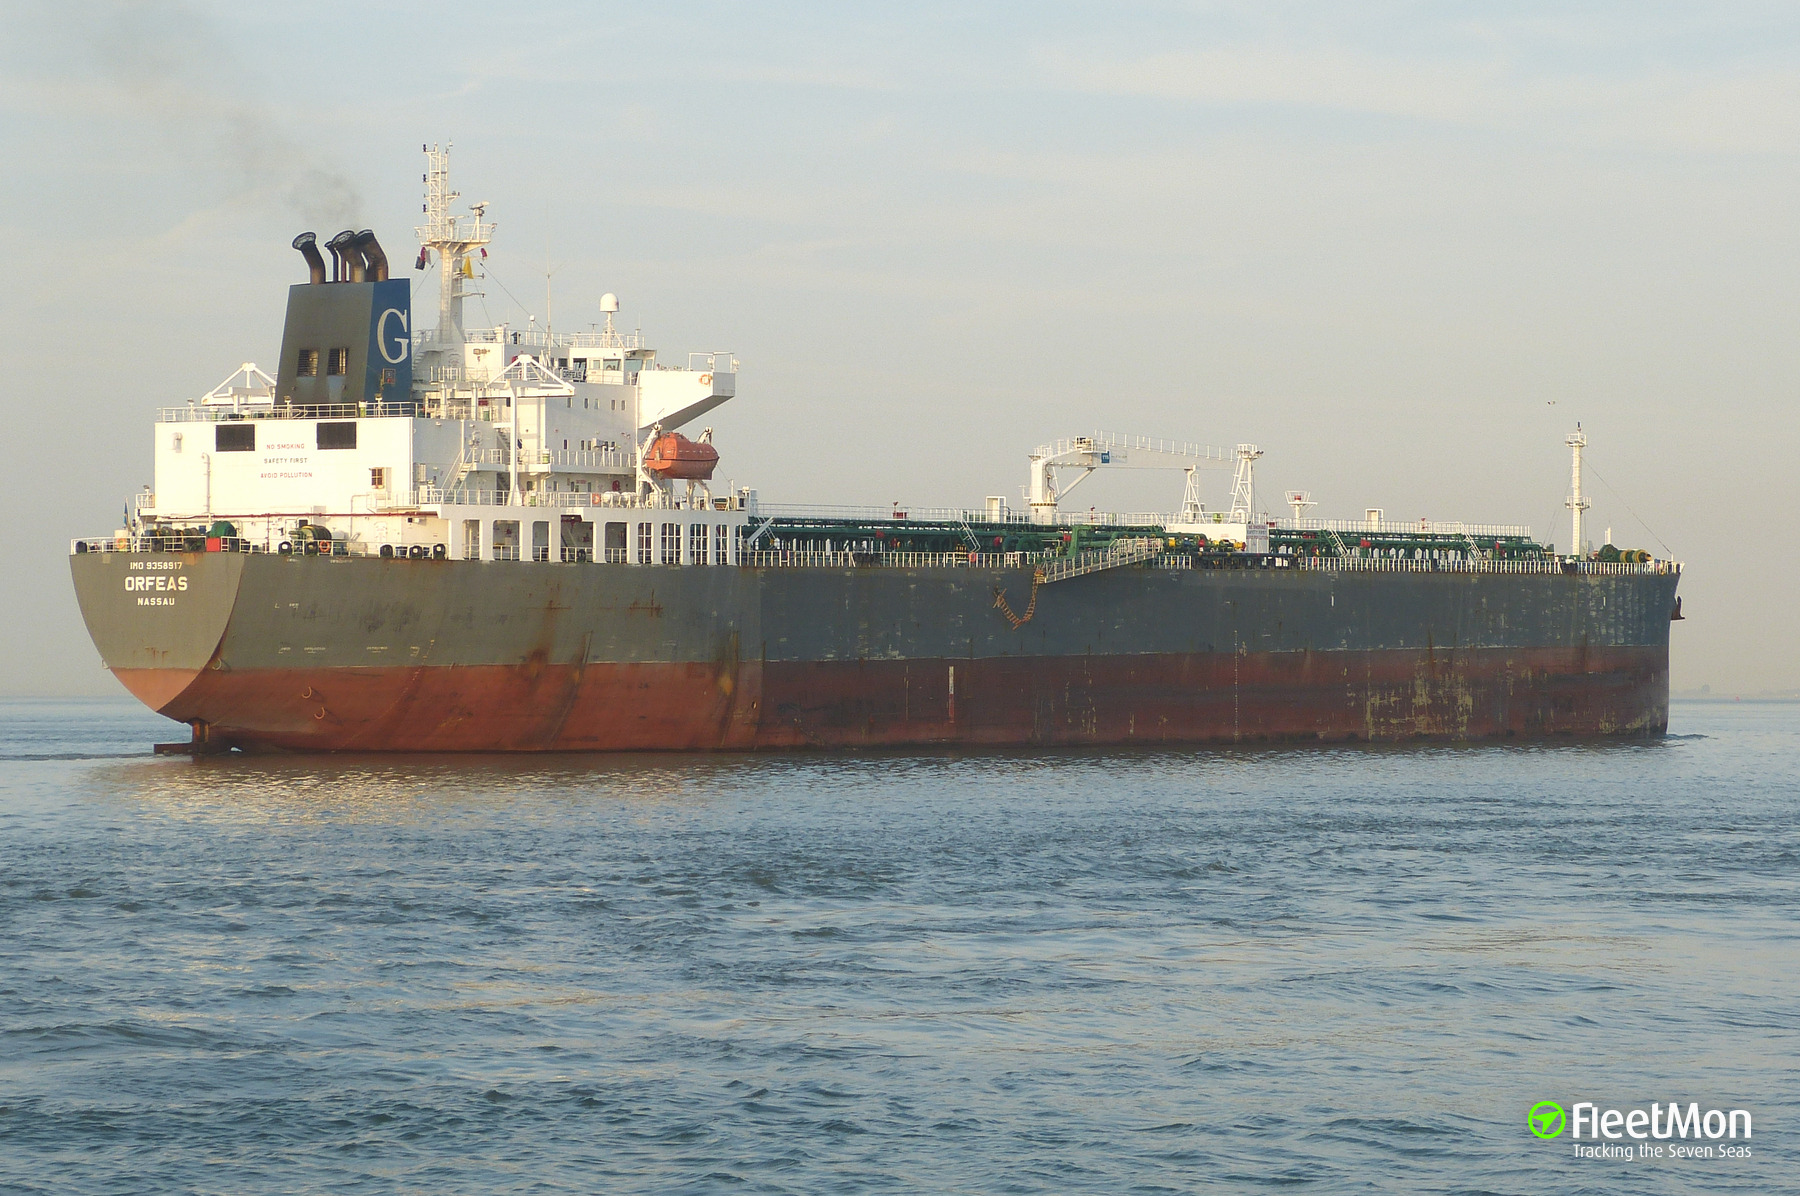 Greek tanker Orfeas hijacked off Abidjan, Ivory Coast